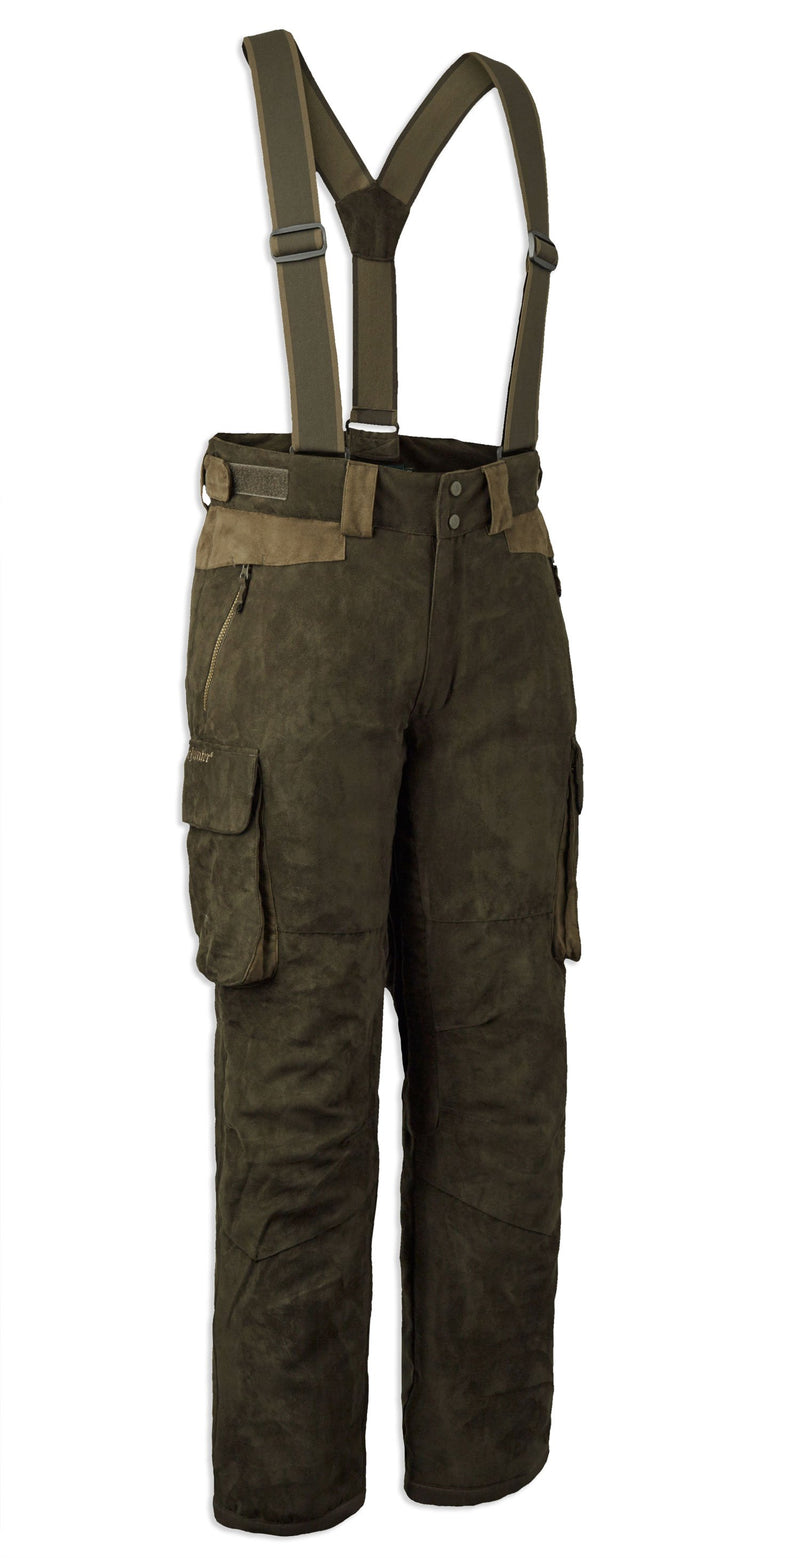 Deerhunter Deer Winter Trousers with suspenders